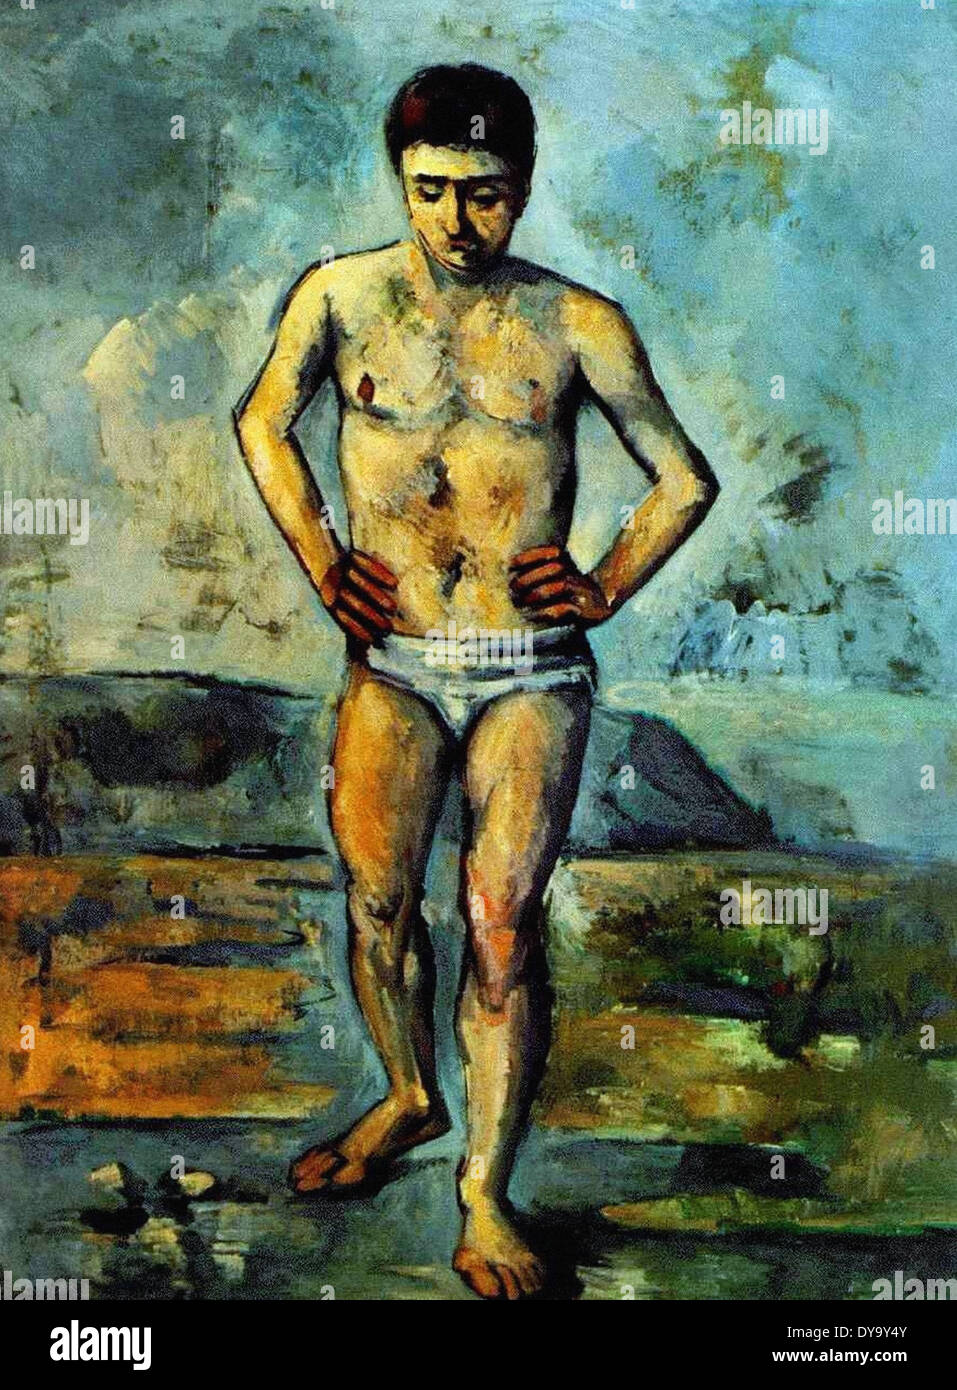 Paul Cezanne The Bather - Stock Image